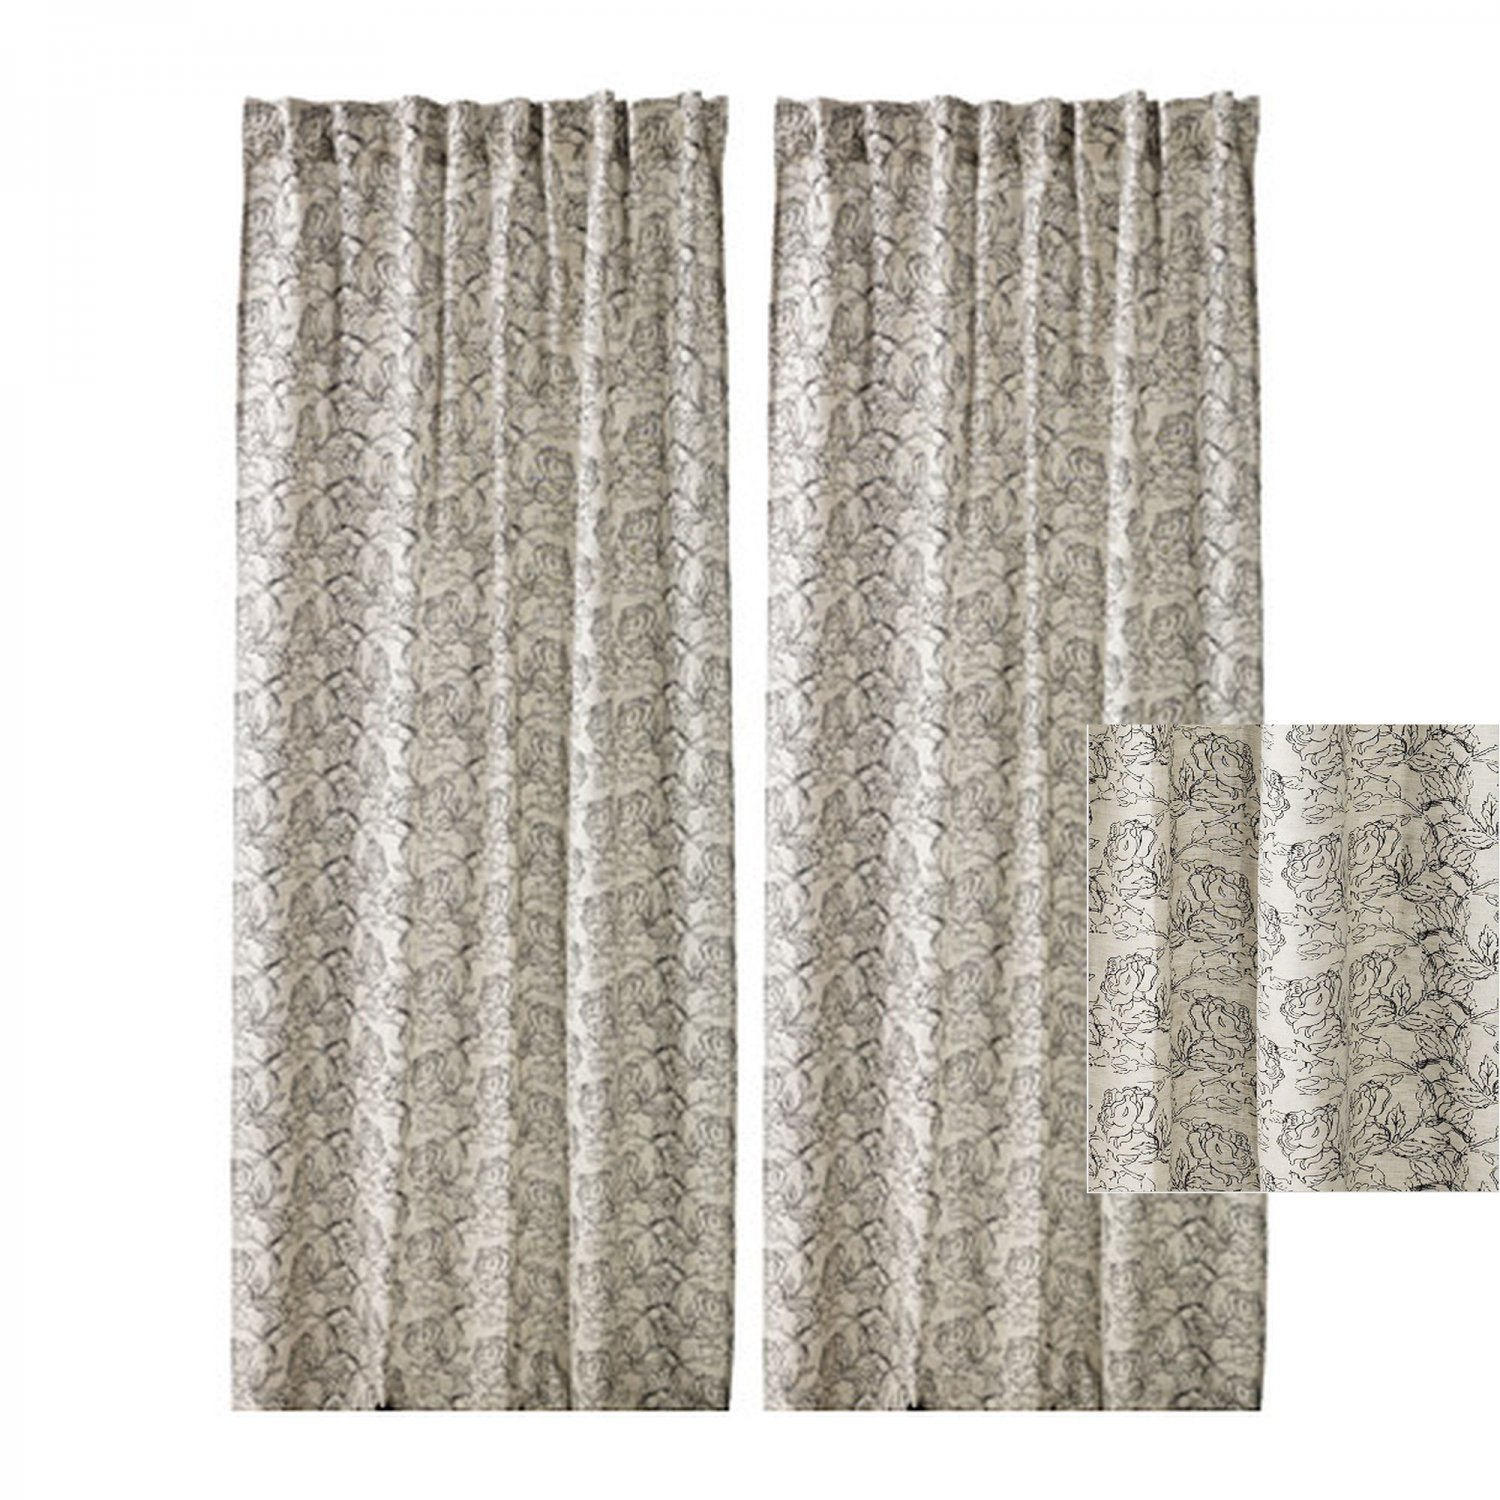 ikea ryssby 2014 curtains drapes black beige natural